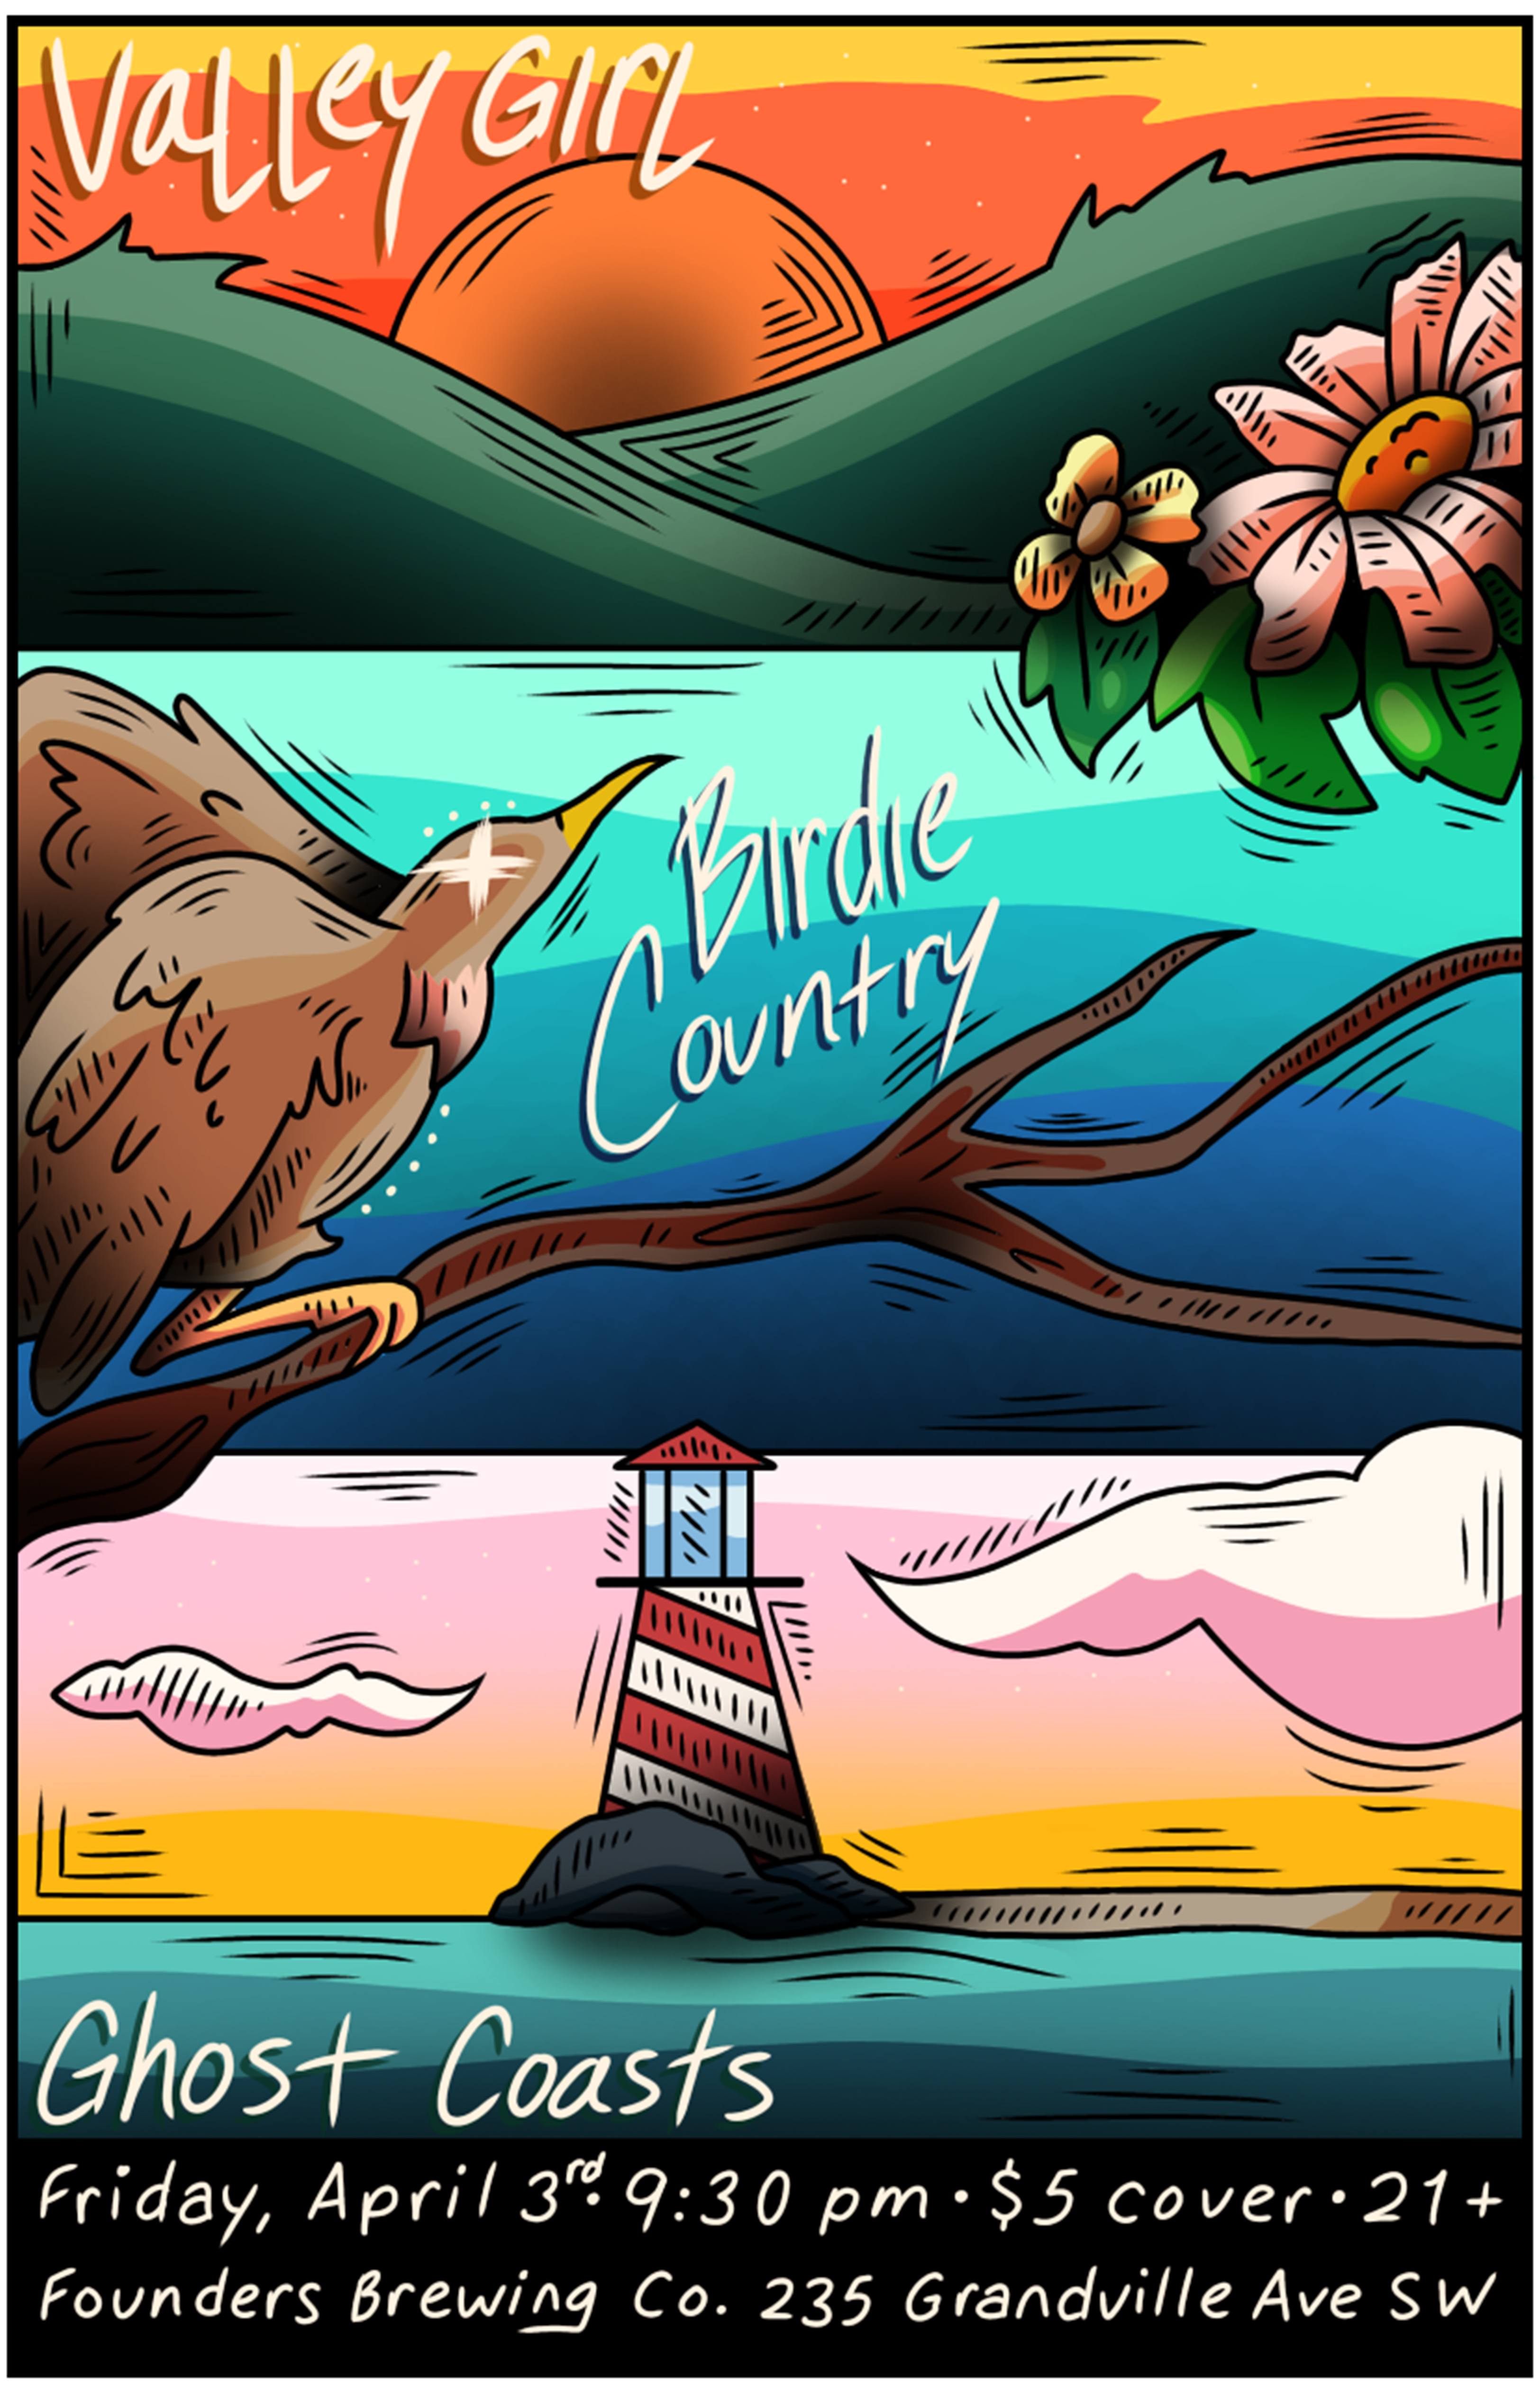 Birdie Country event poster hosted by Founders Brewing Co. in Grand Rapids